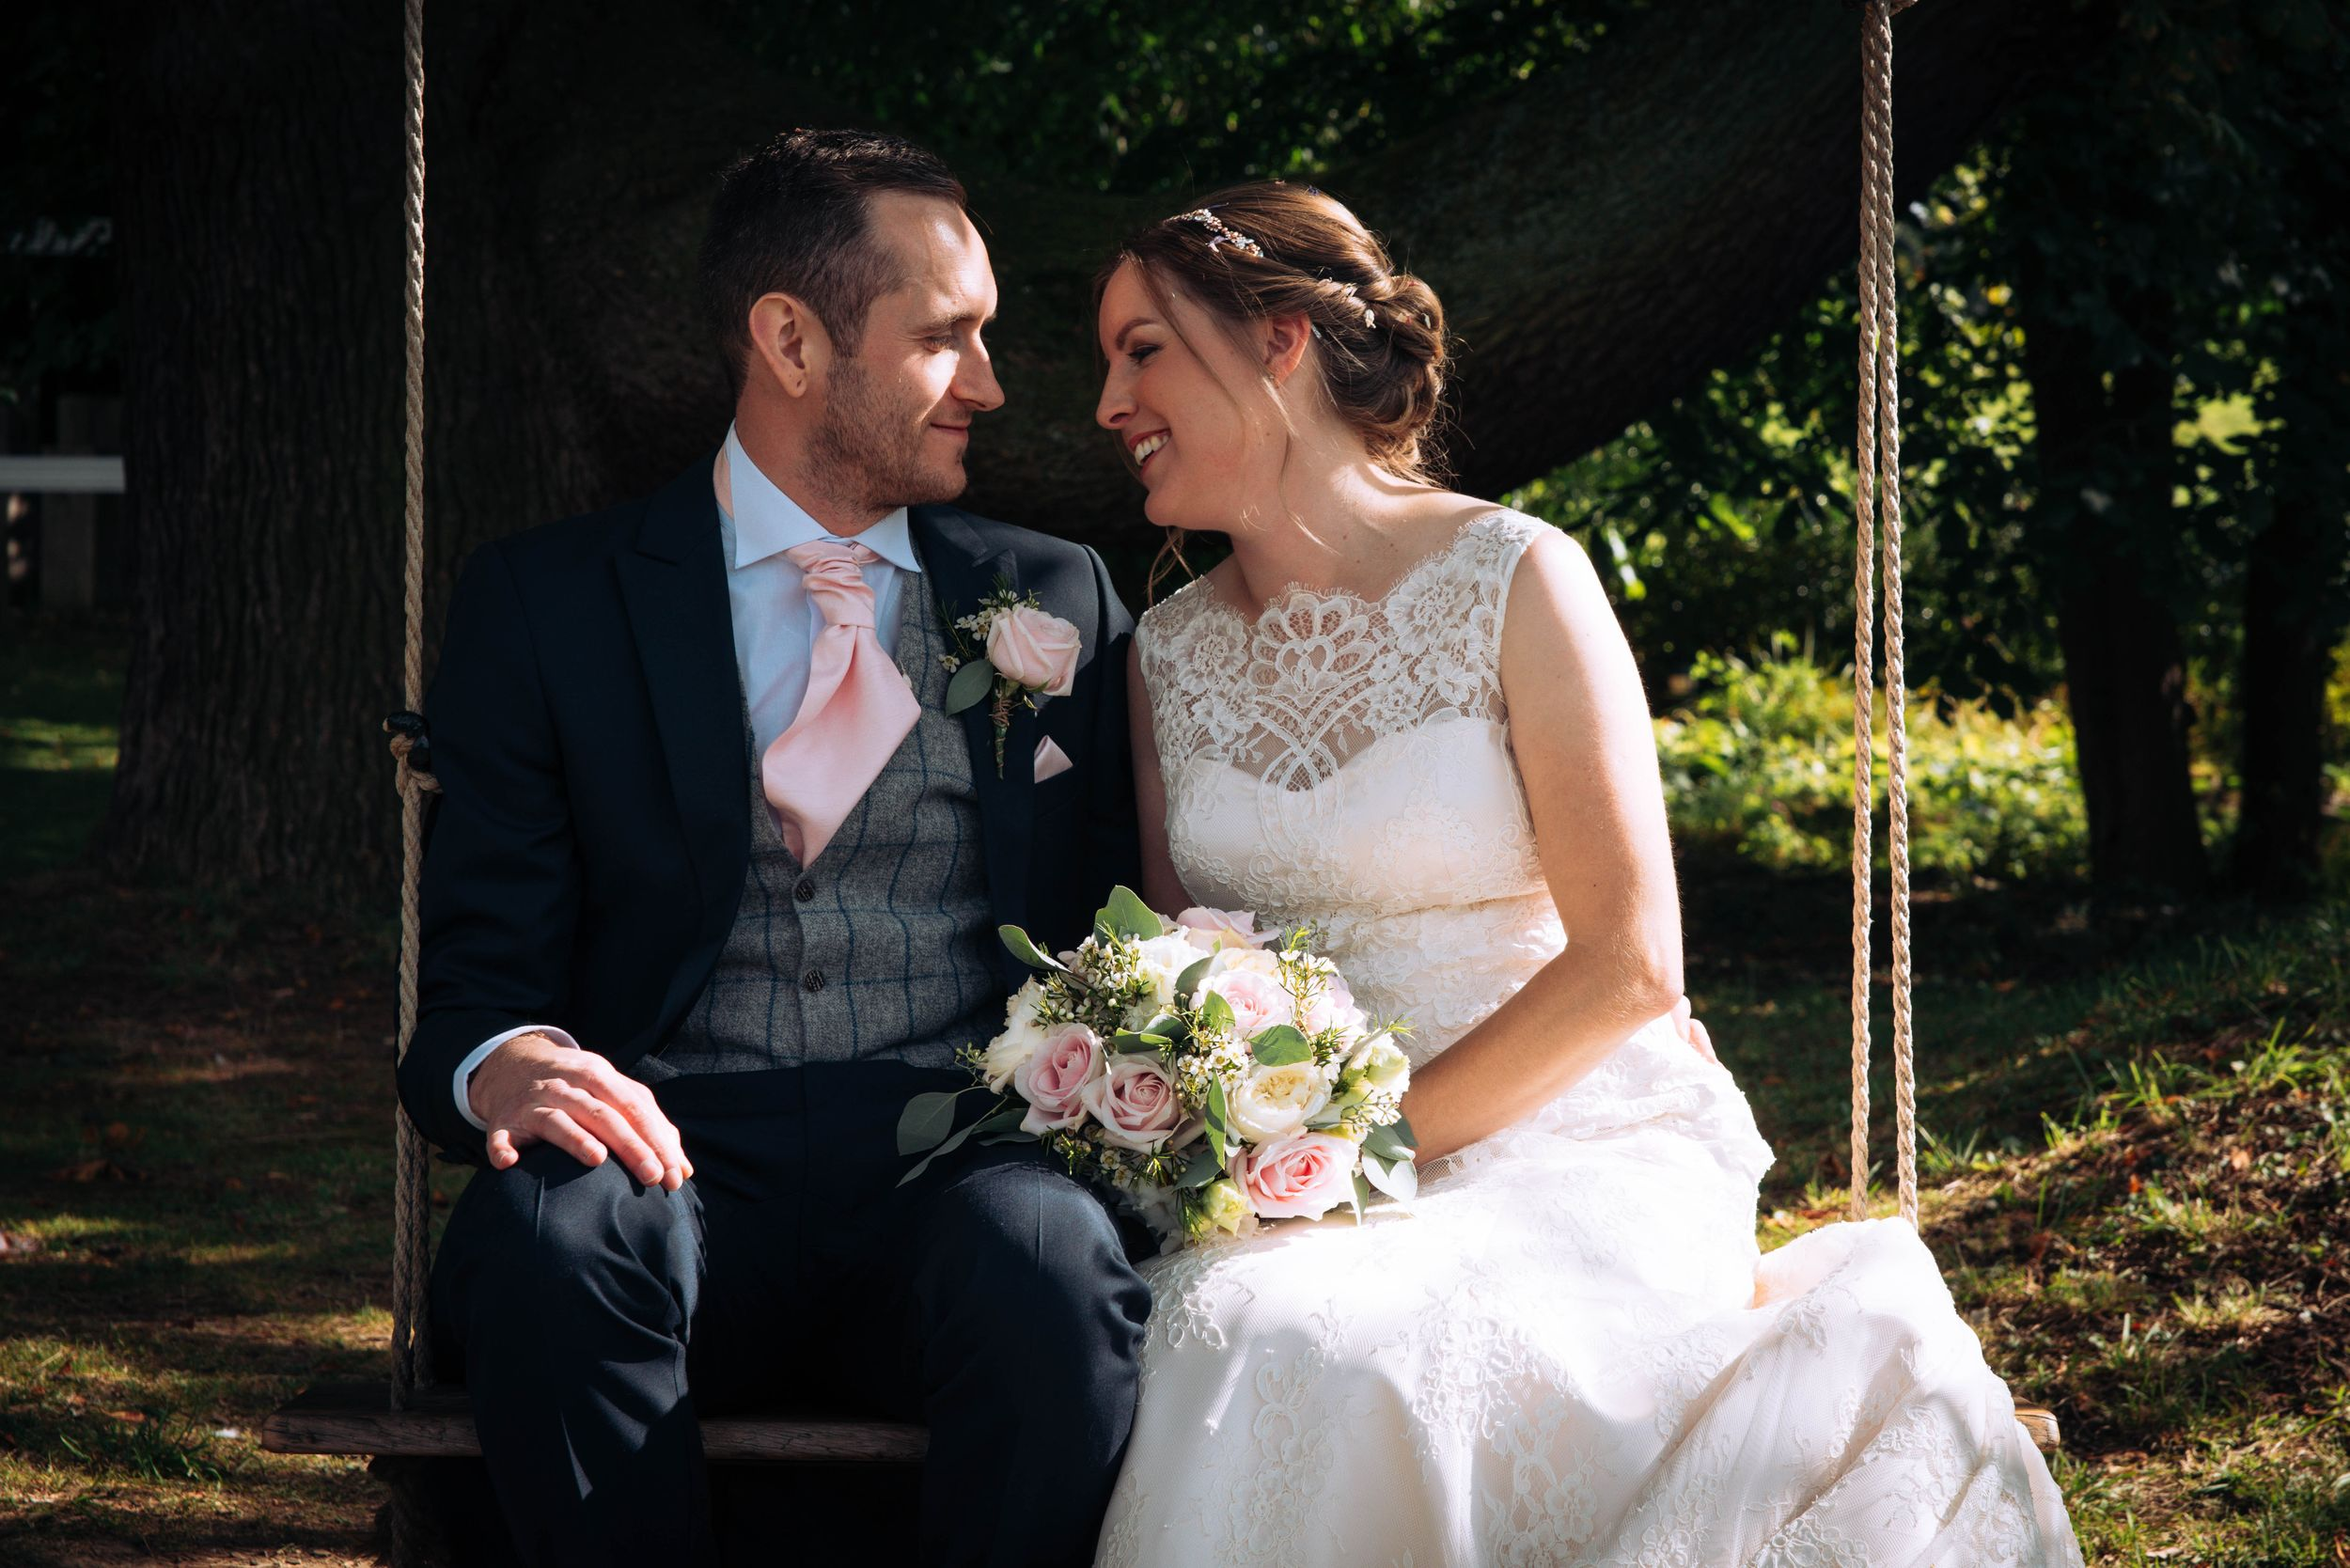 Zara Davis Wedding Photography Near Stroud, Gloucestershire, Cotswolds Glenfall House bride and groom on swing